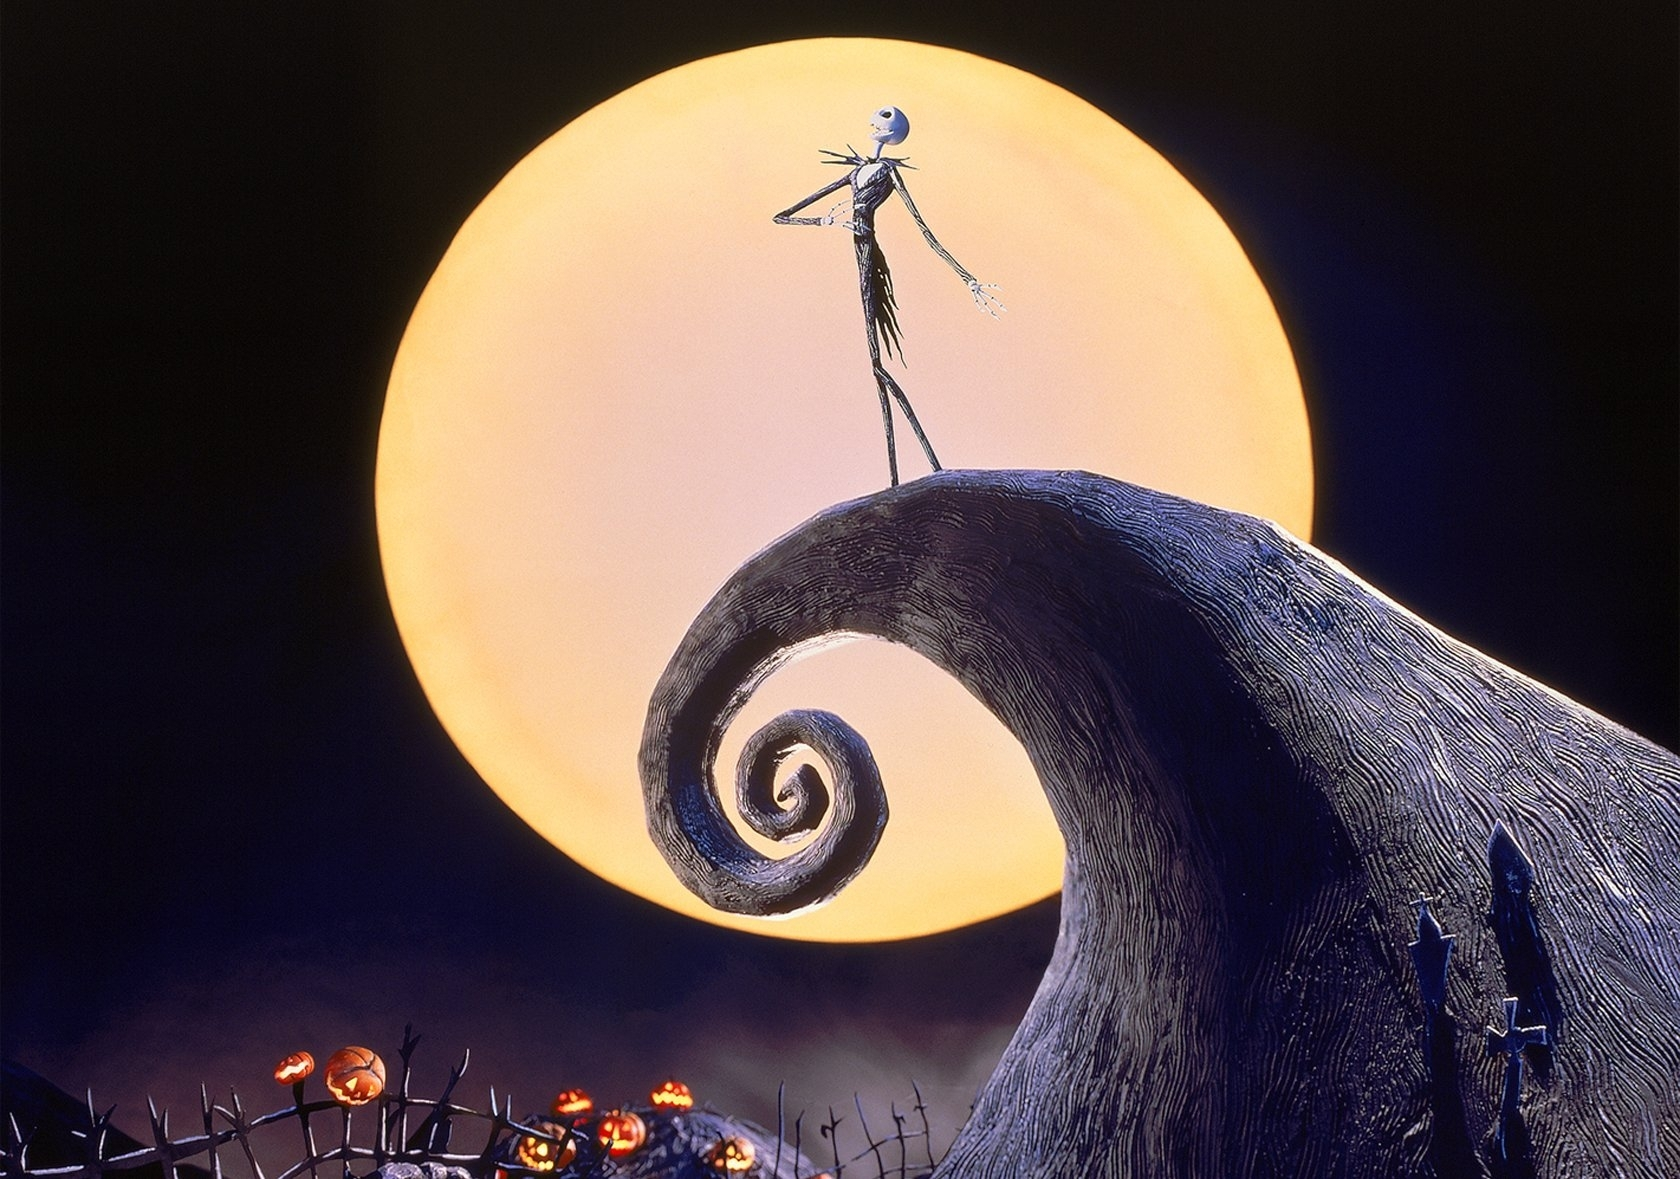 10 Best Nightmare Before Christmas Hd Wallpaper FULL HD 1920×1080 For PC Desktop